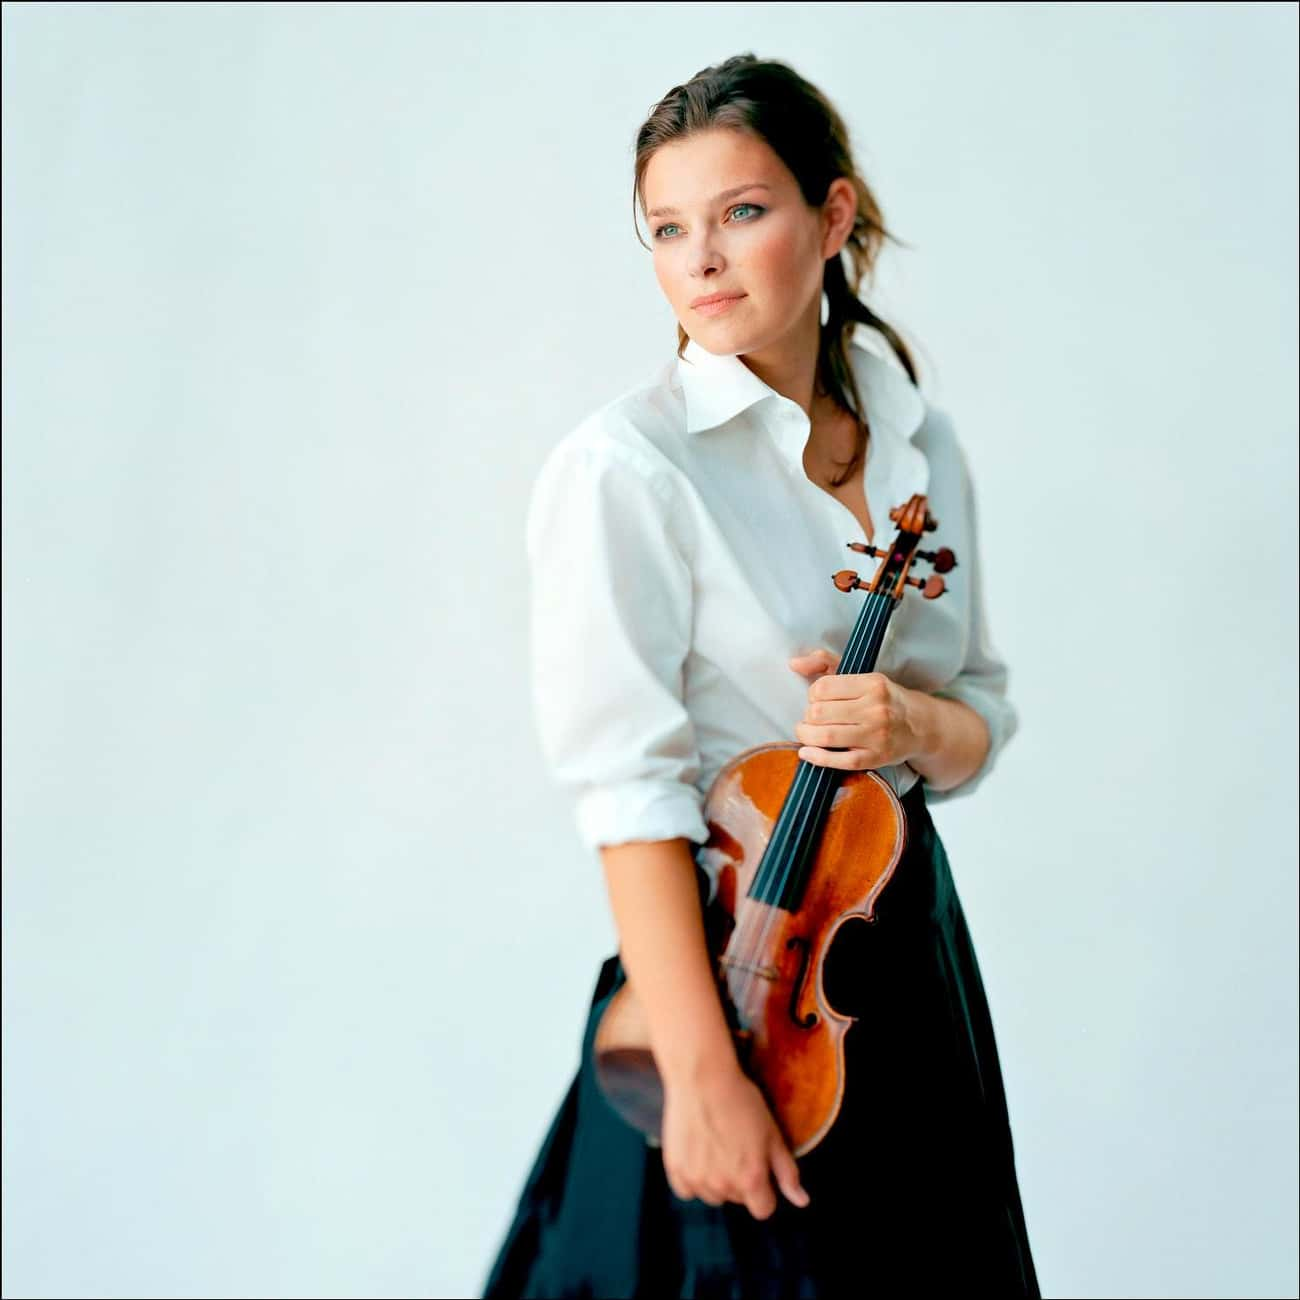 Janine Jansen is listed (or ranked) 4 on the list The Most Gorgeous Female Classical Musicians